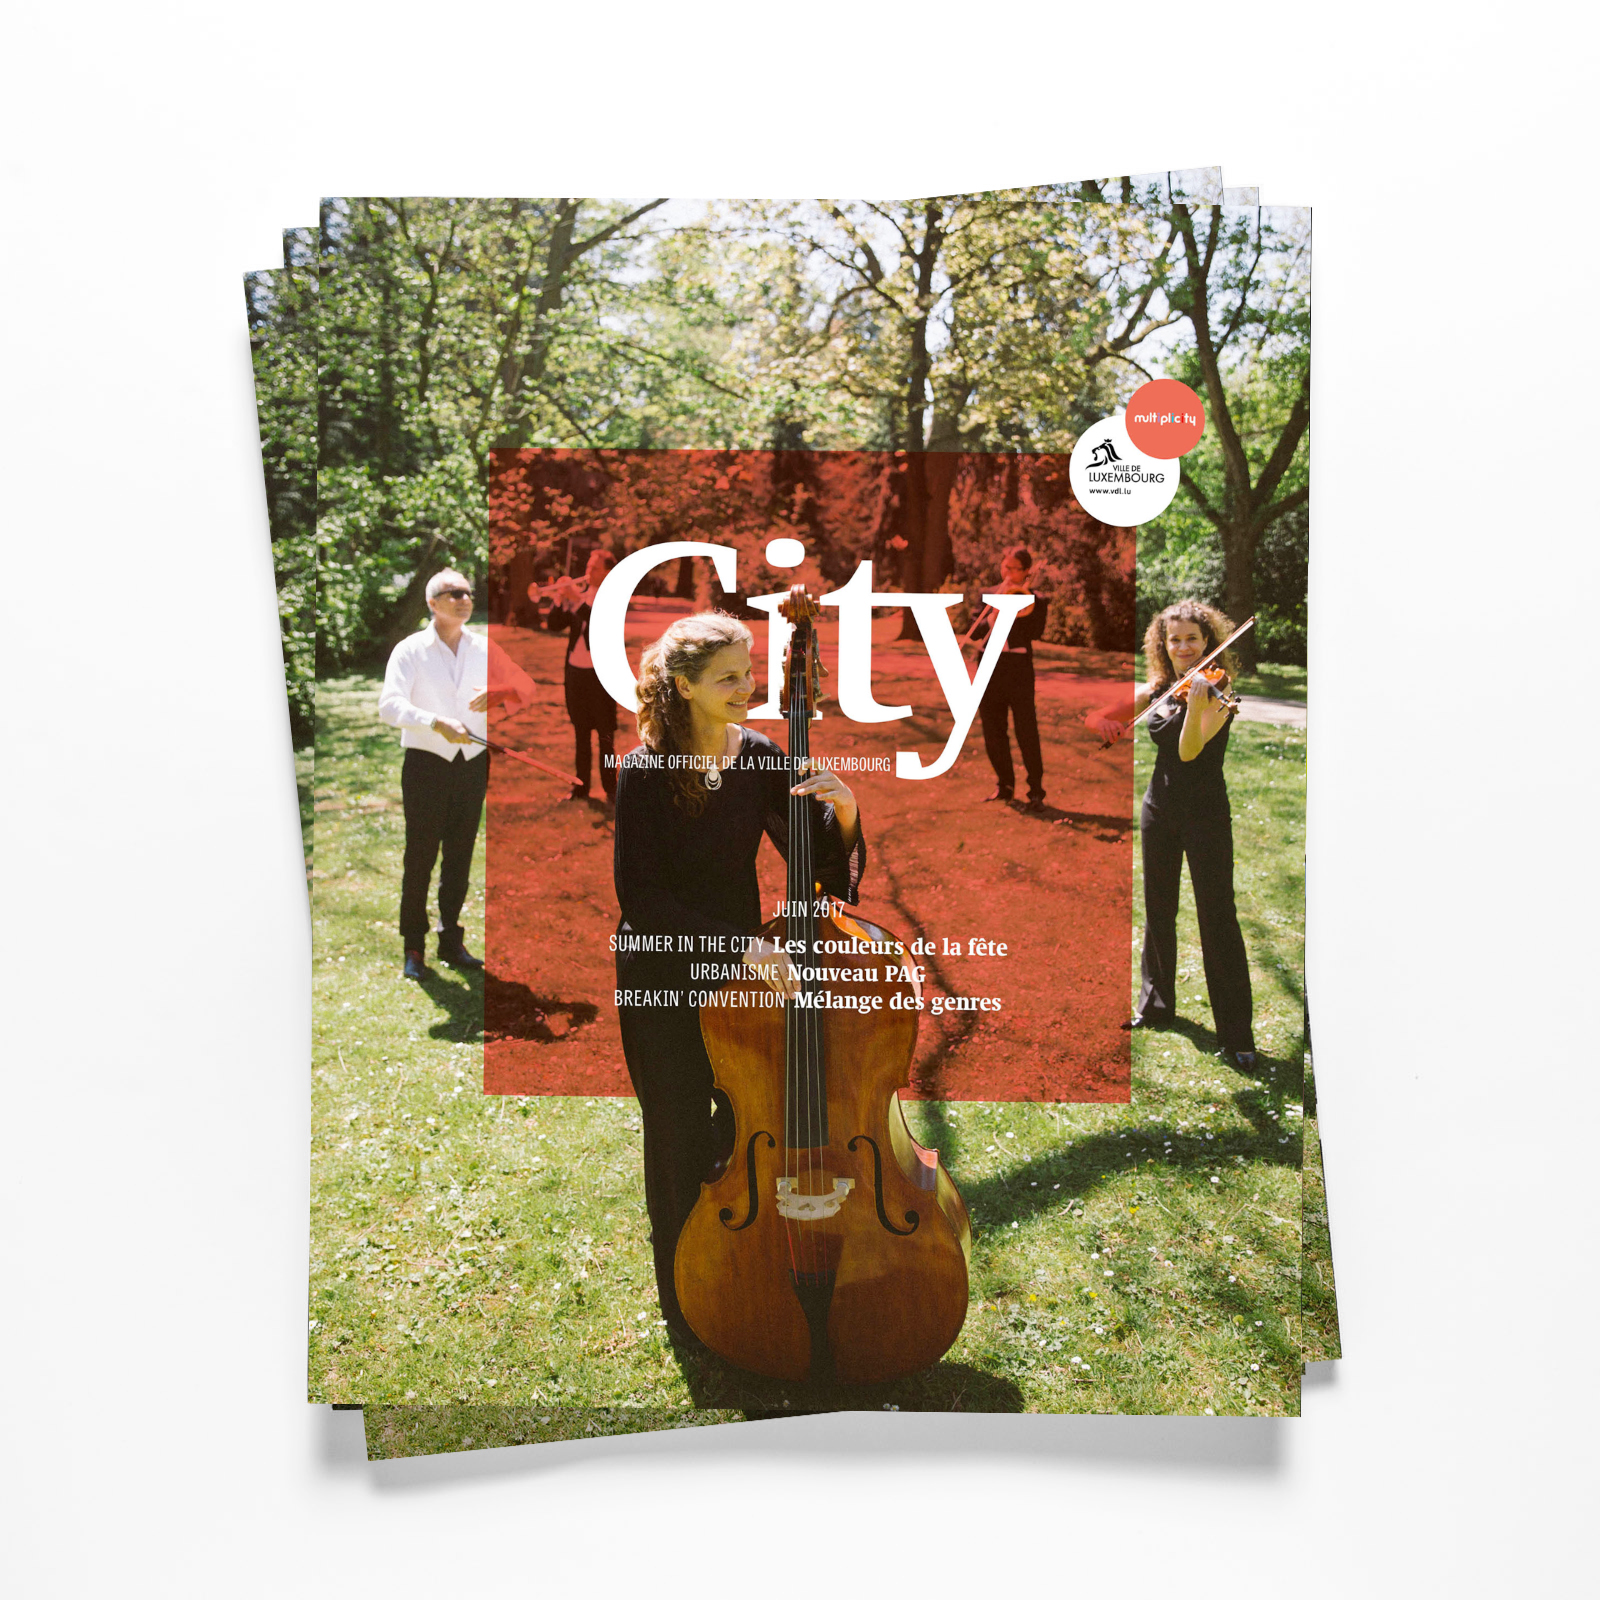 master_city_cover_empilé